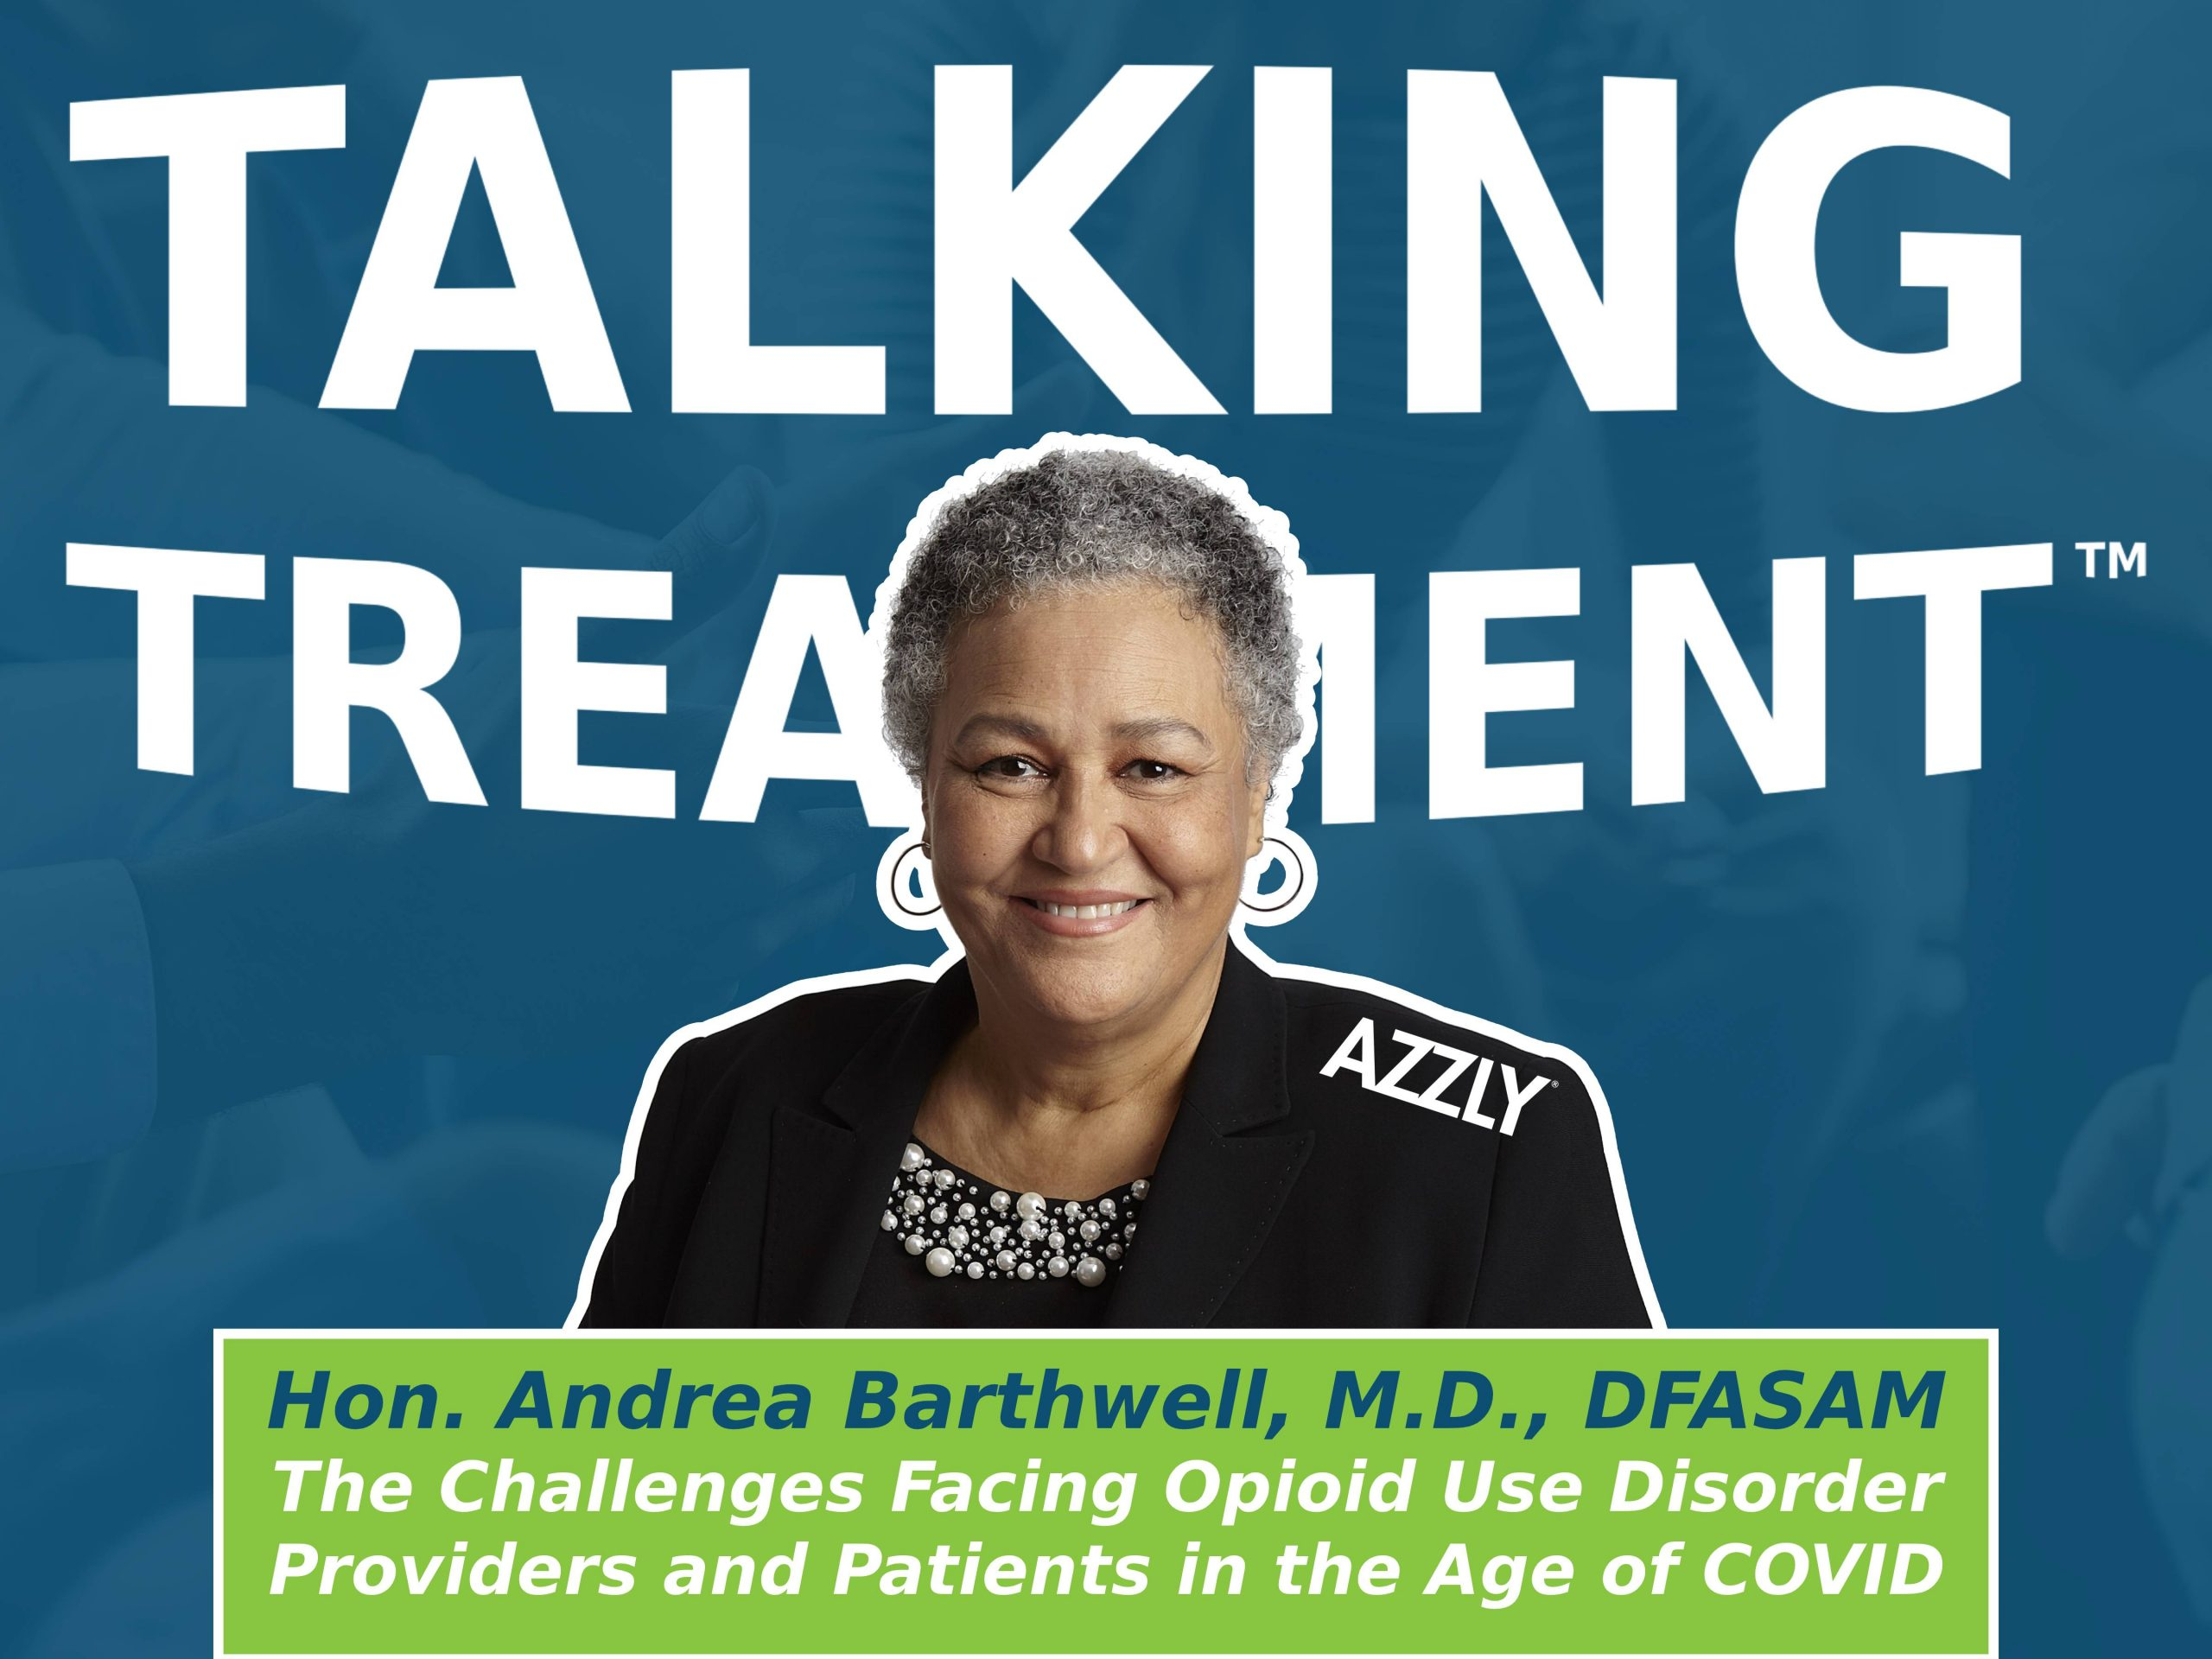 Dr. Andrea Barthwell Discusses The Challenges Of Opioid Use Disorder Providers And Patients In The Age Of COVID